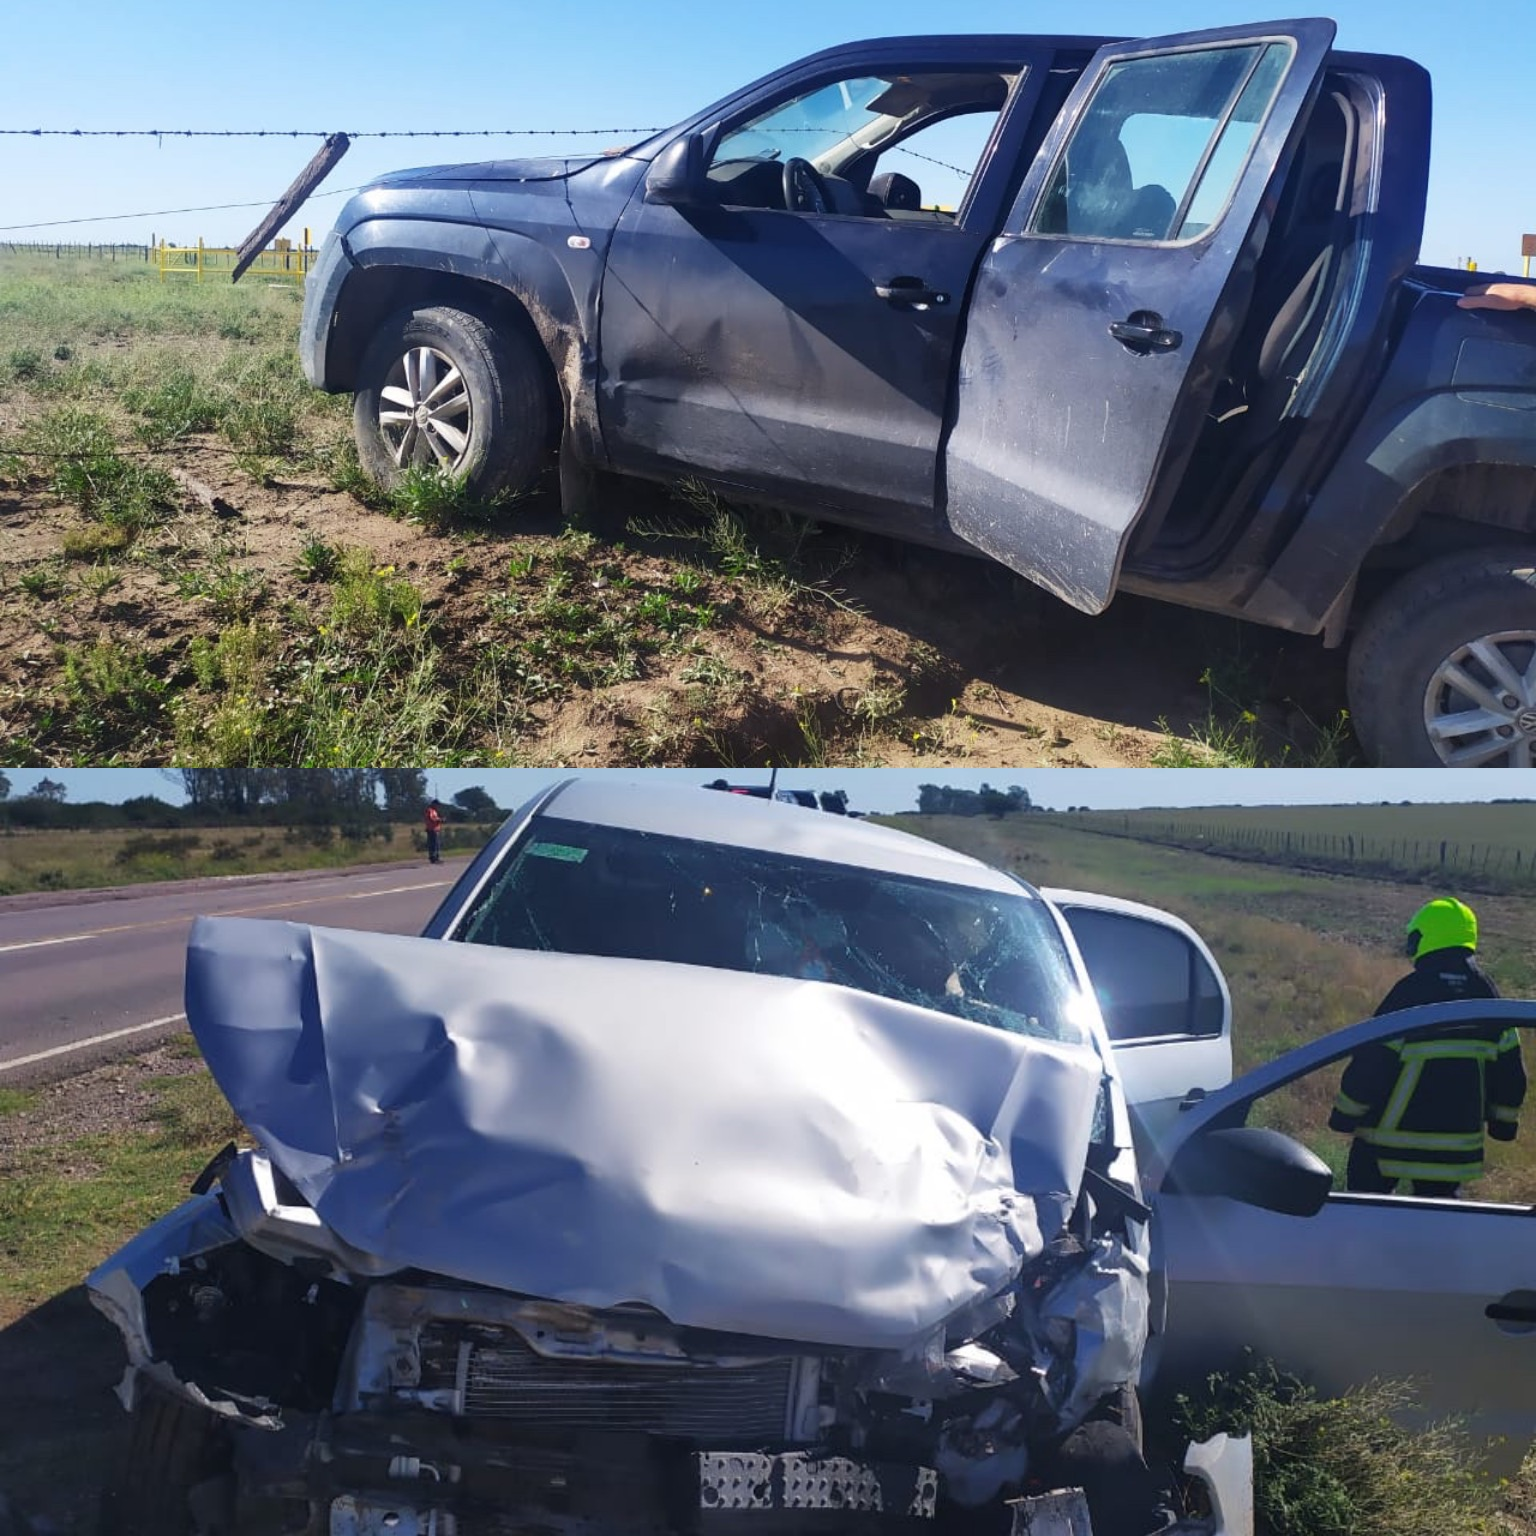 ACCIDENTE EN CERCANÍAS DE ALGARROBO